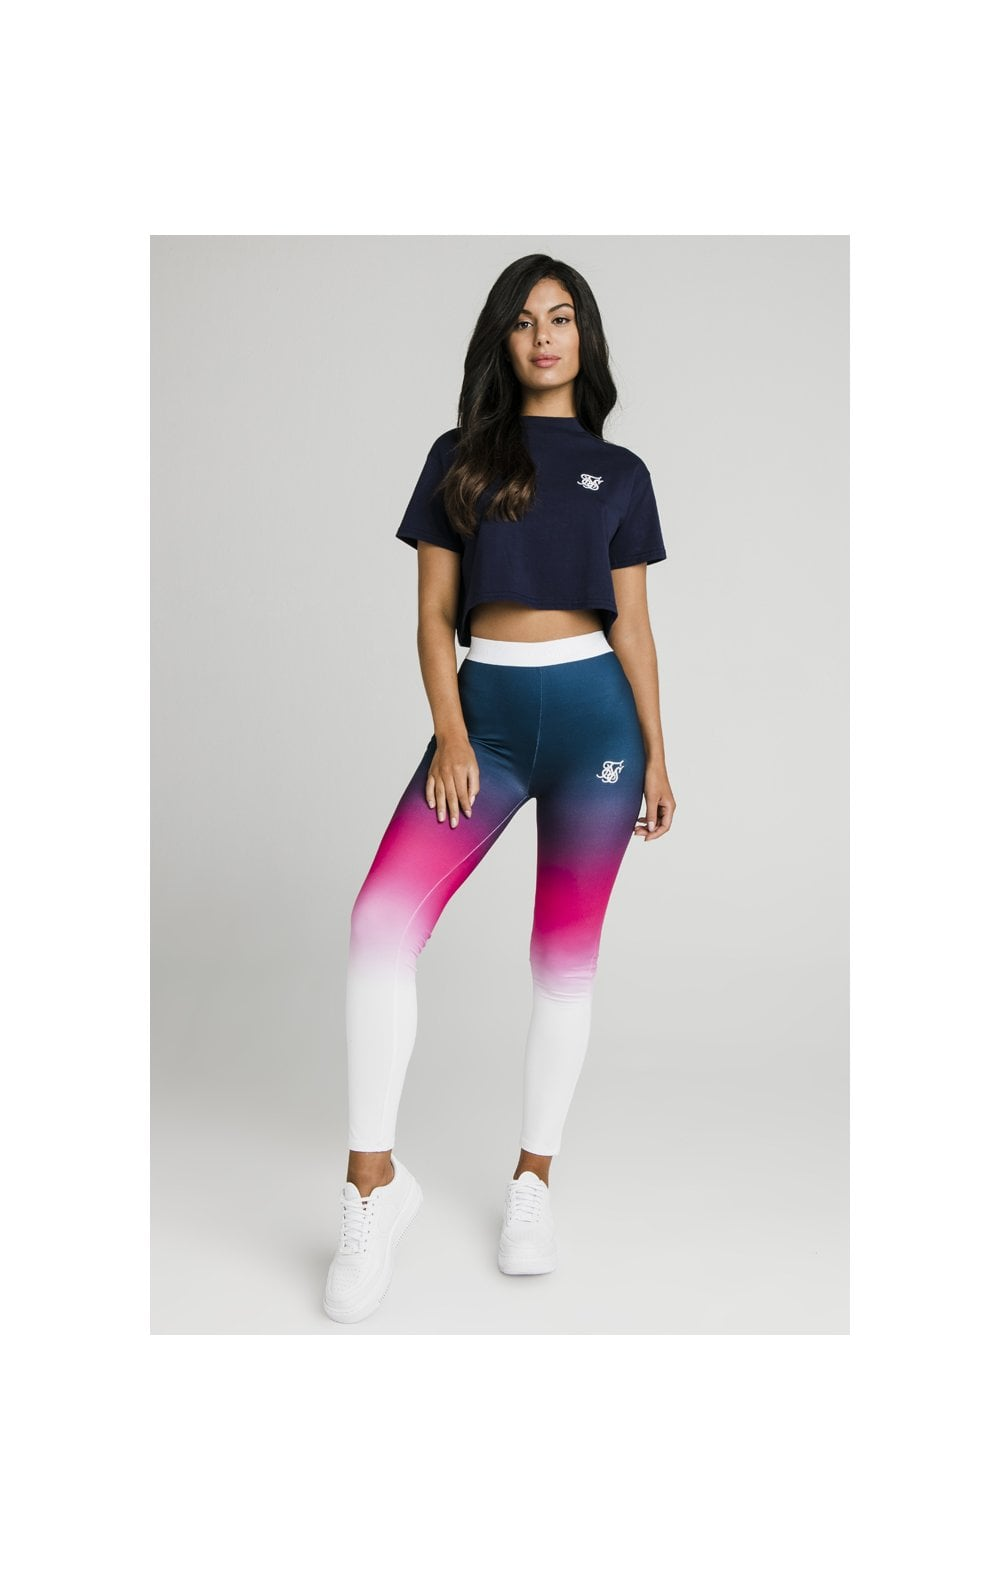 Charger l'image dans la galerie, SikSilk Fade Tape Leggings - Navy, Pink & White (2)